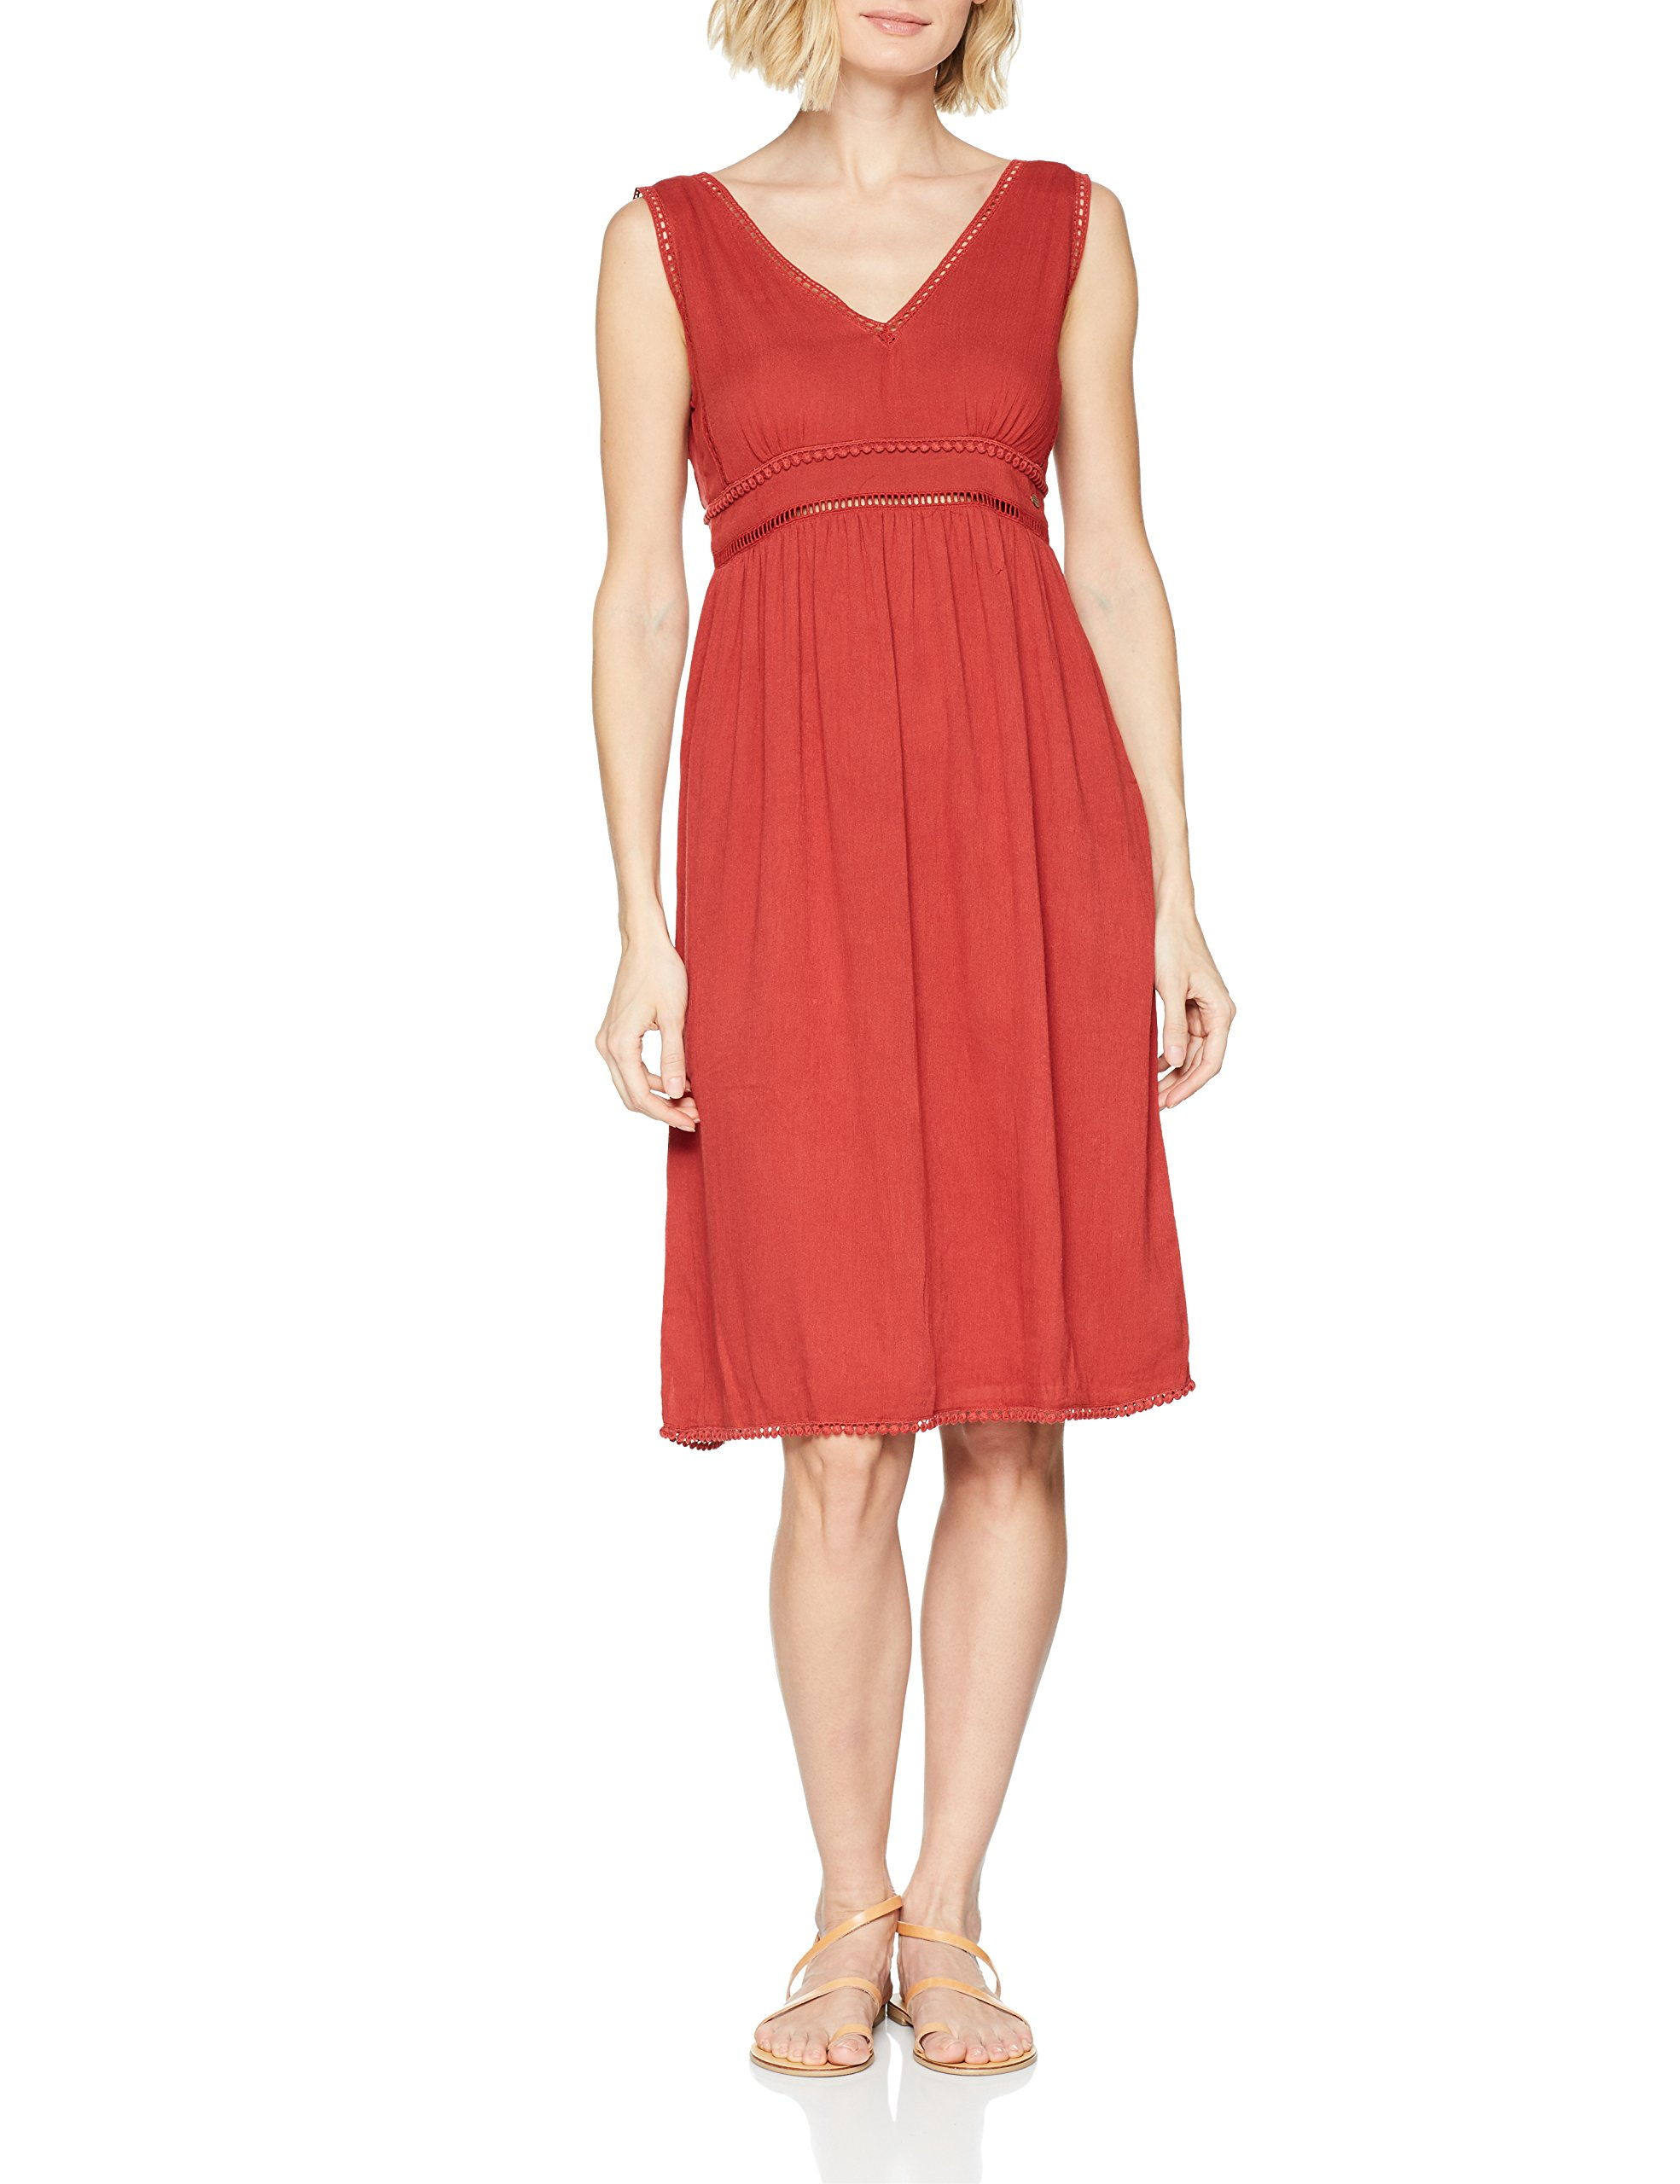 Rouge38taille Ddp F9clarar02 Robeocre FabricantMFemme Ddp Rouge38taille F9clarar02 Robeocre QdhrtBsCx